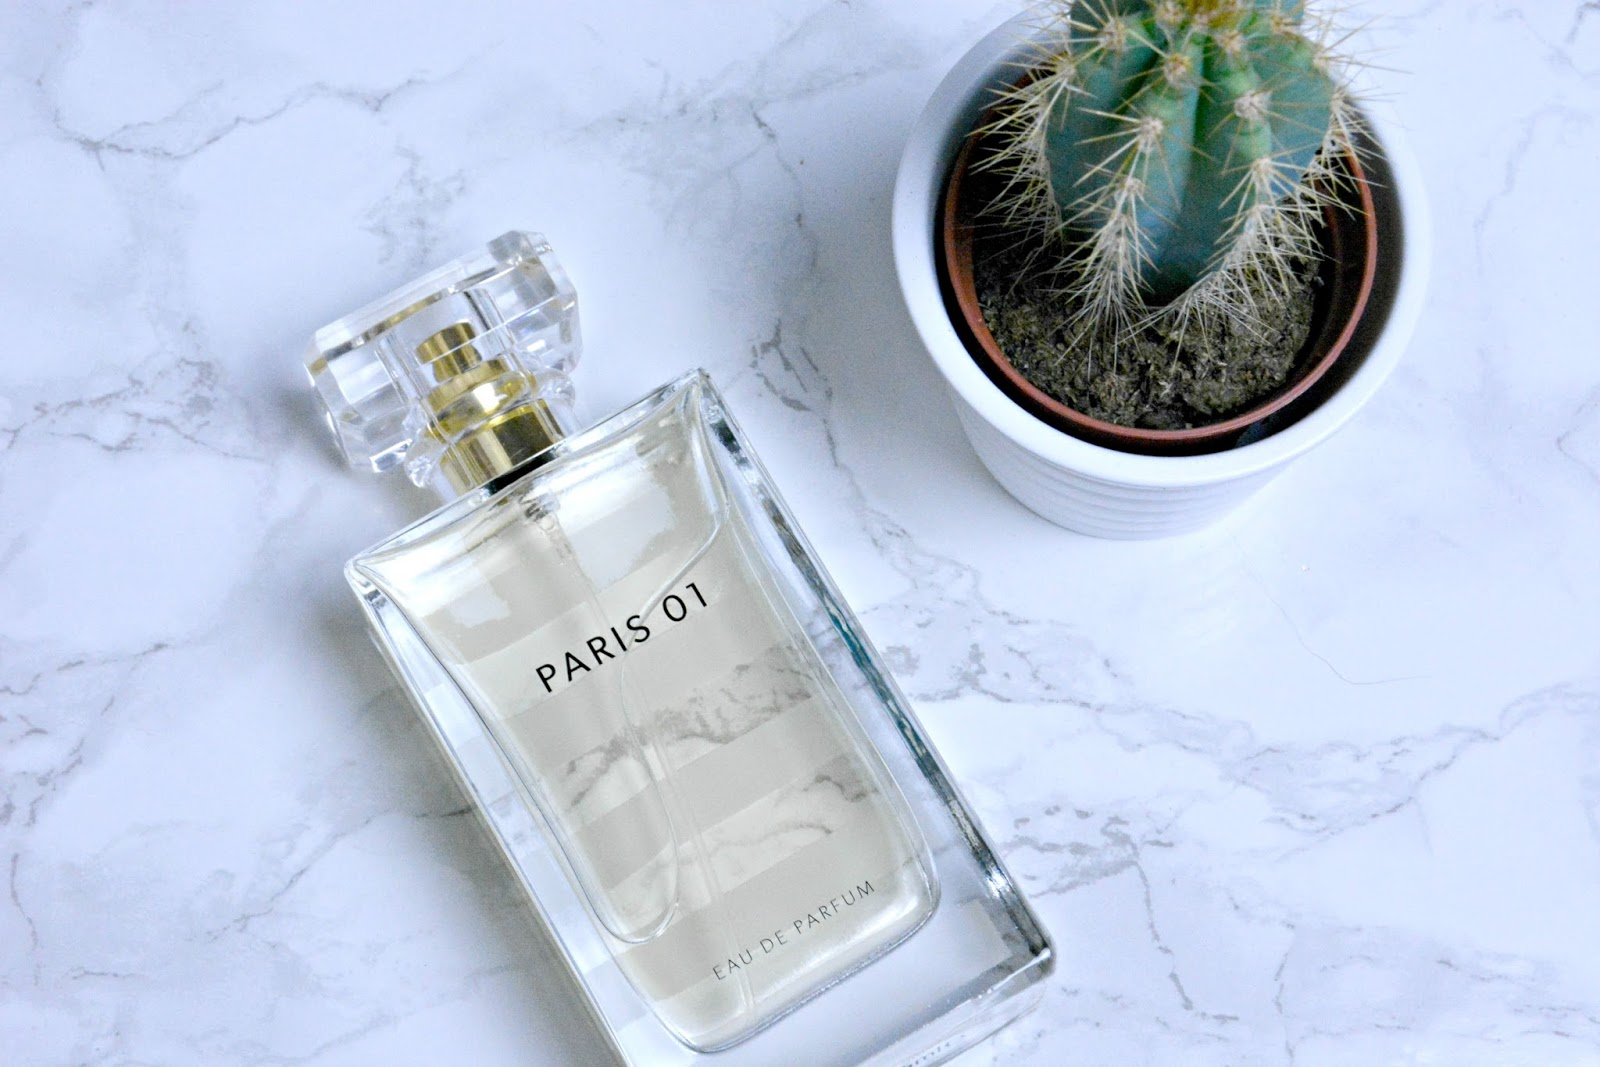 paris, perfume, cosmetics, make up, beauty, eau de parfum, review